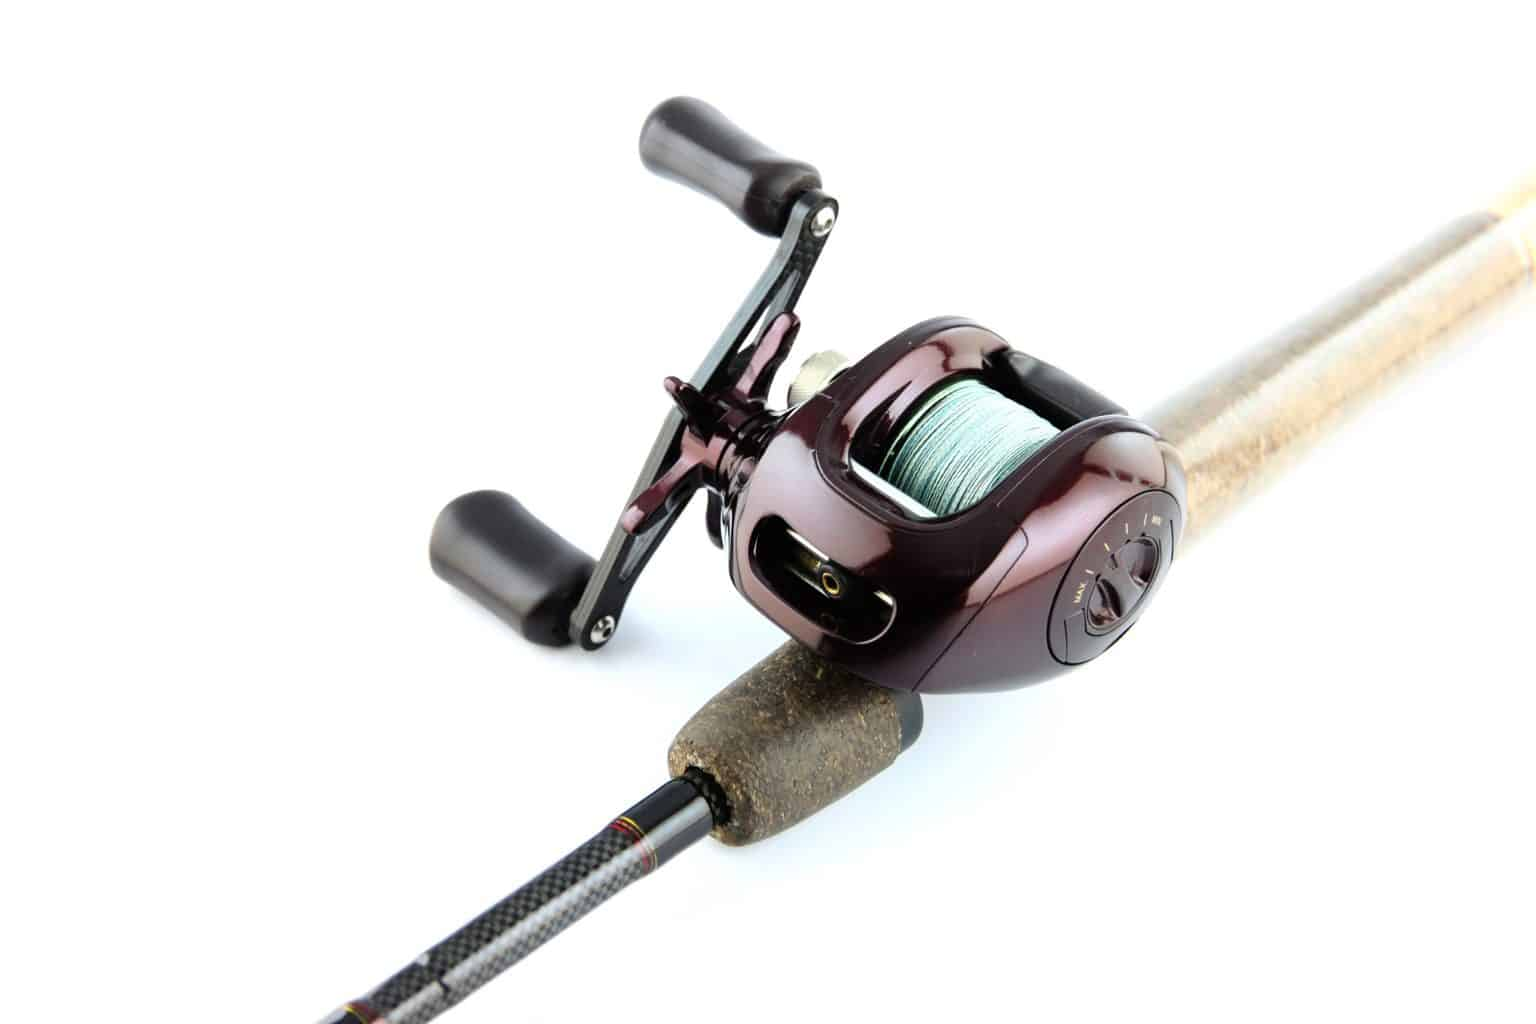 One of the best baitcaster reels under 100 on display in front of a white background